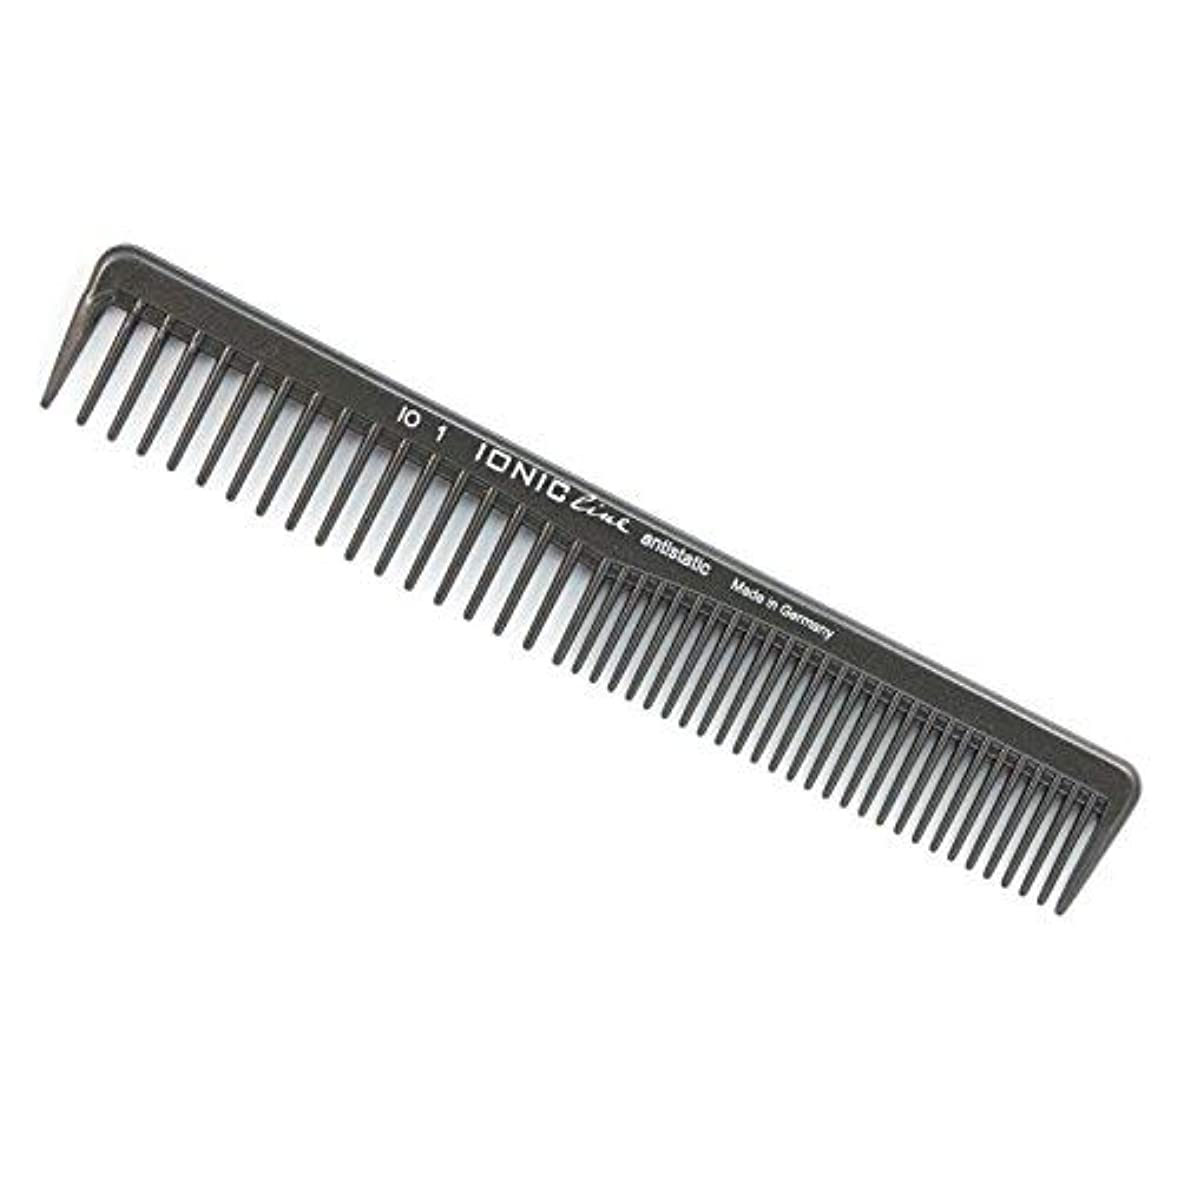 スクラッチ致命的な医師Hercules S?gemann Ionic Line Cutting Comb with coarse and Very coarse Teeth | Ionized Thermoplastic - Made in...